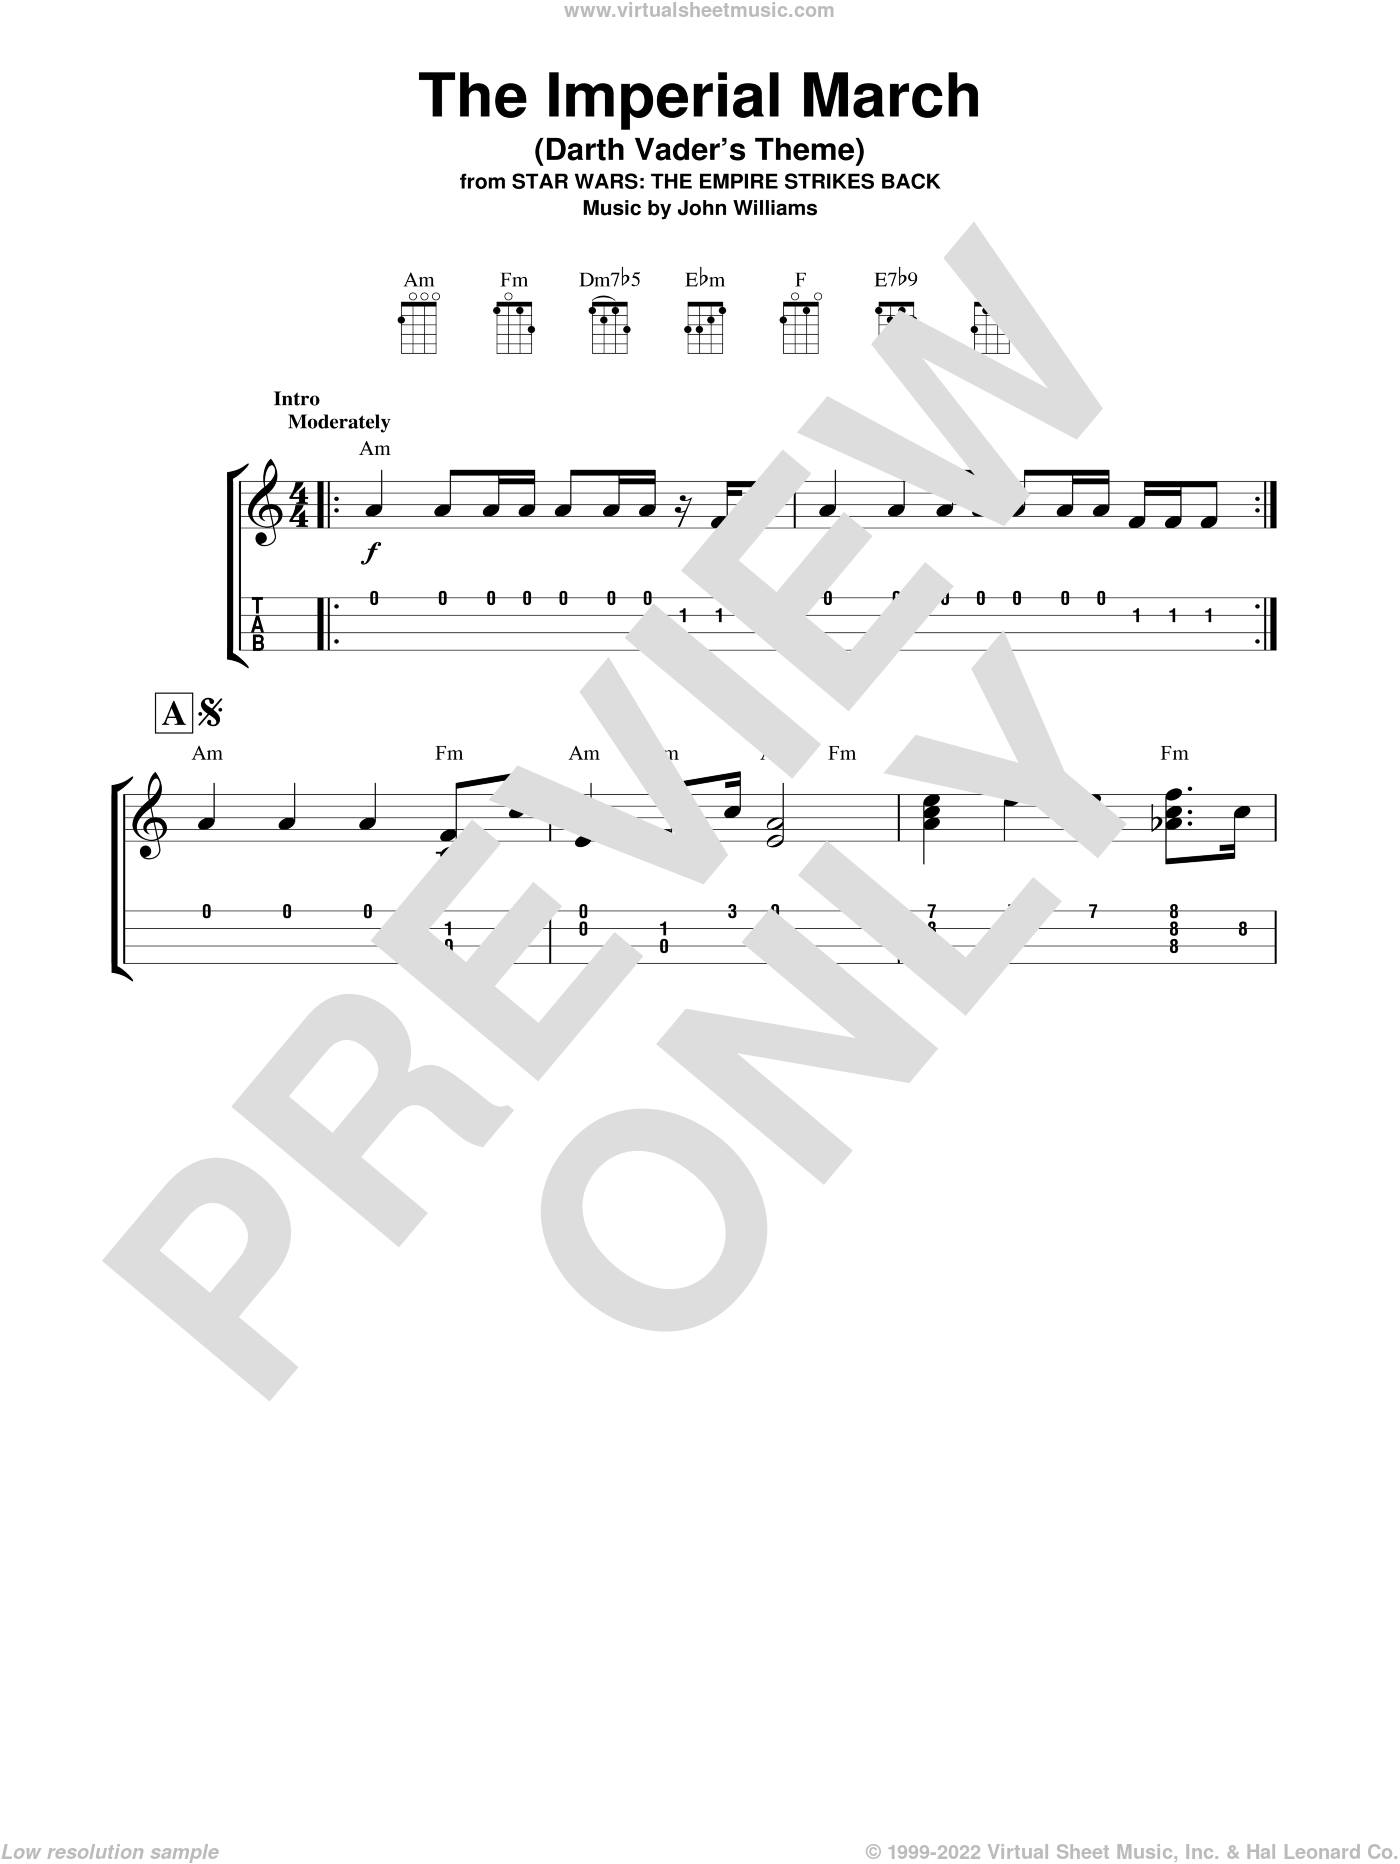 The Imperial March (Darth Vader's Theme) sheet music for ukulele by John Williams, intermediate skill level